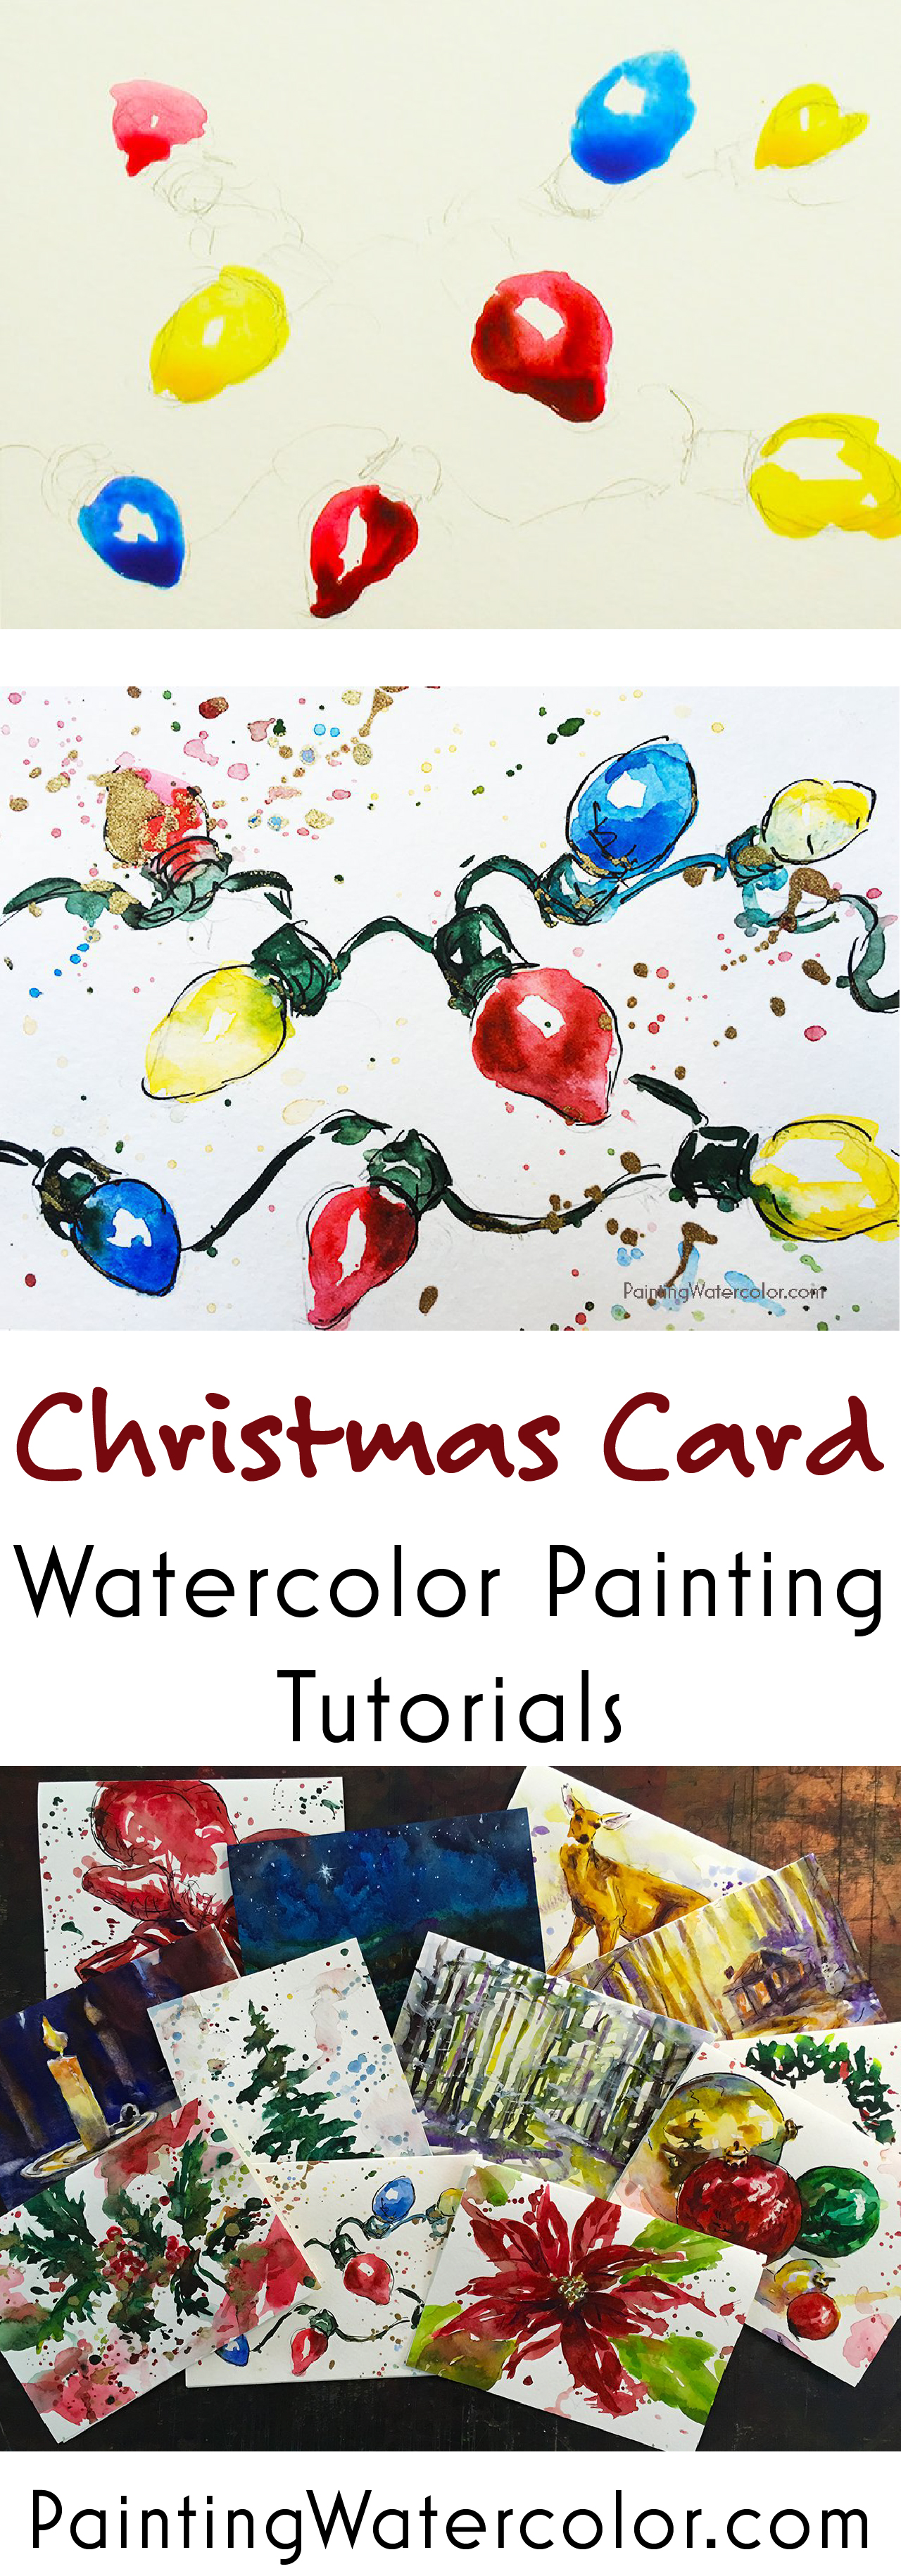 Paint beautiful Christmas cards for your family and friends! I show you step by step how to paint fun retro lights on a Christmas card.